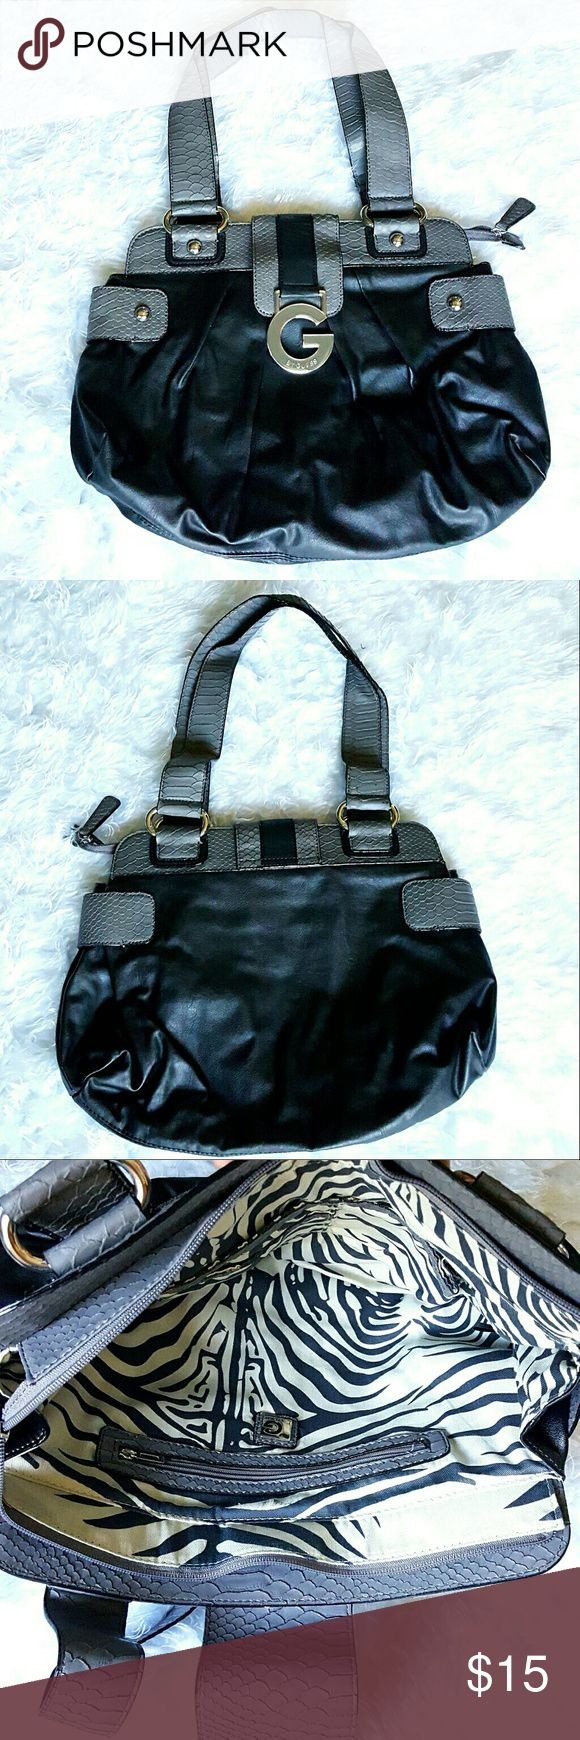 Guess Black and Grey Purse Guess Black and Grey Shoulder Bag in excellent condition! Used once! Guess Bags Shoulder Bags